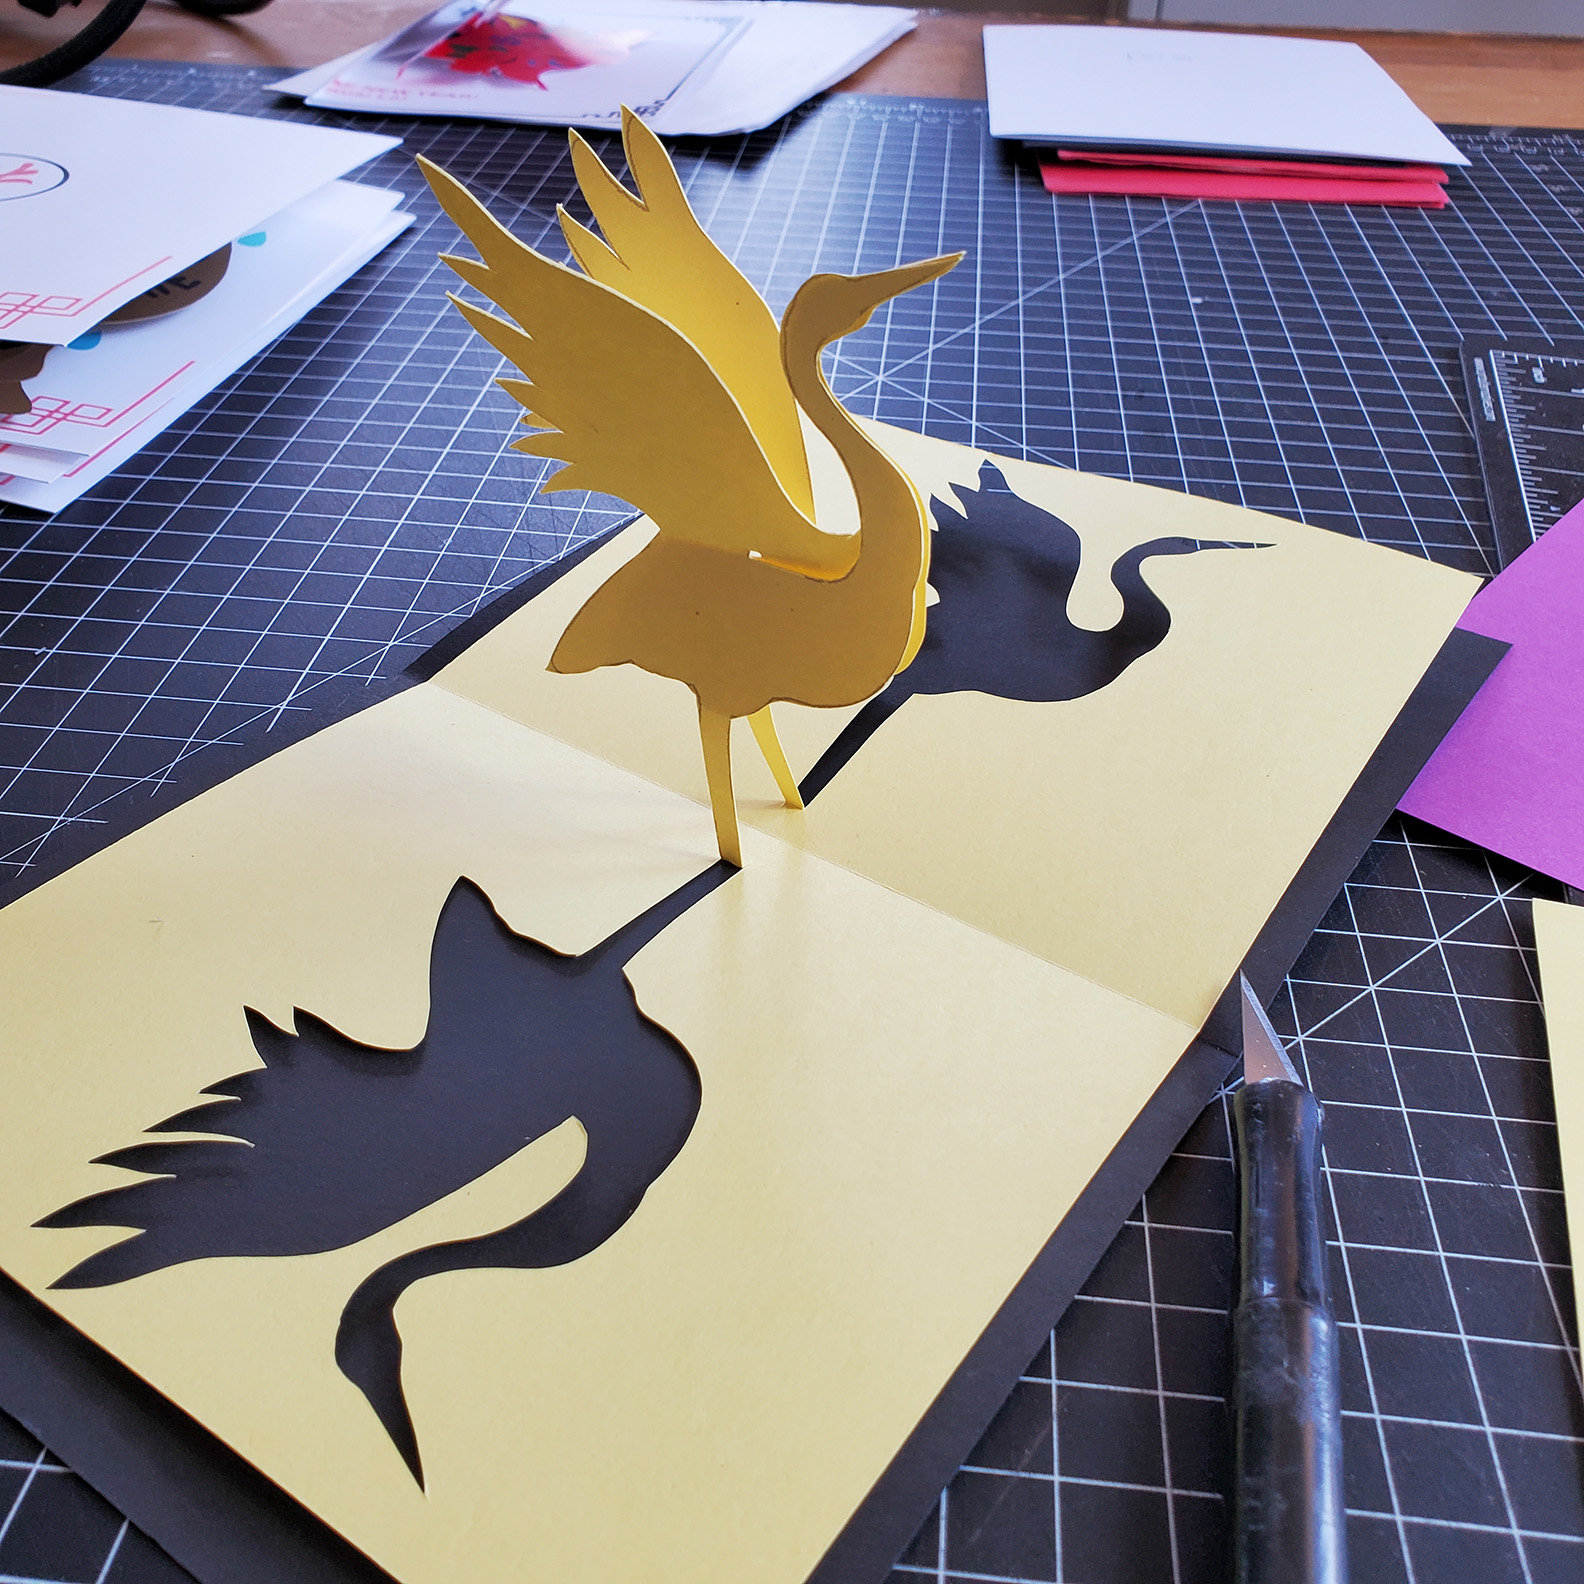 A yellow crane pop-up book is laid flat on a work table.